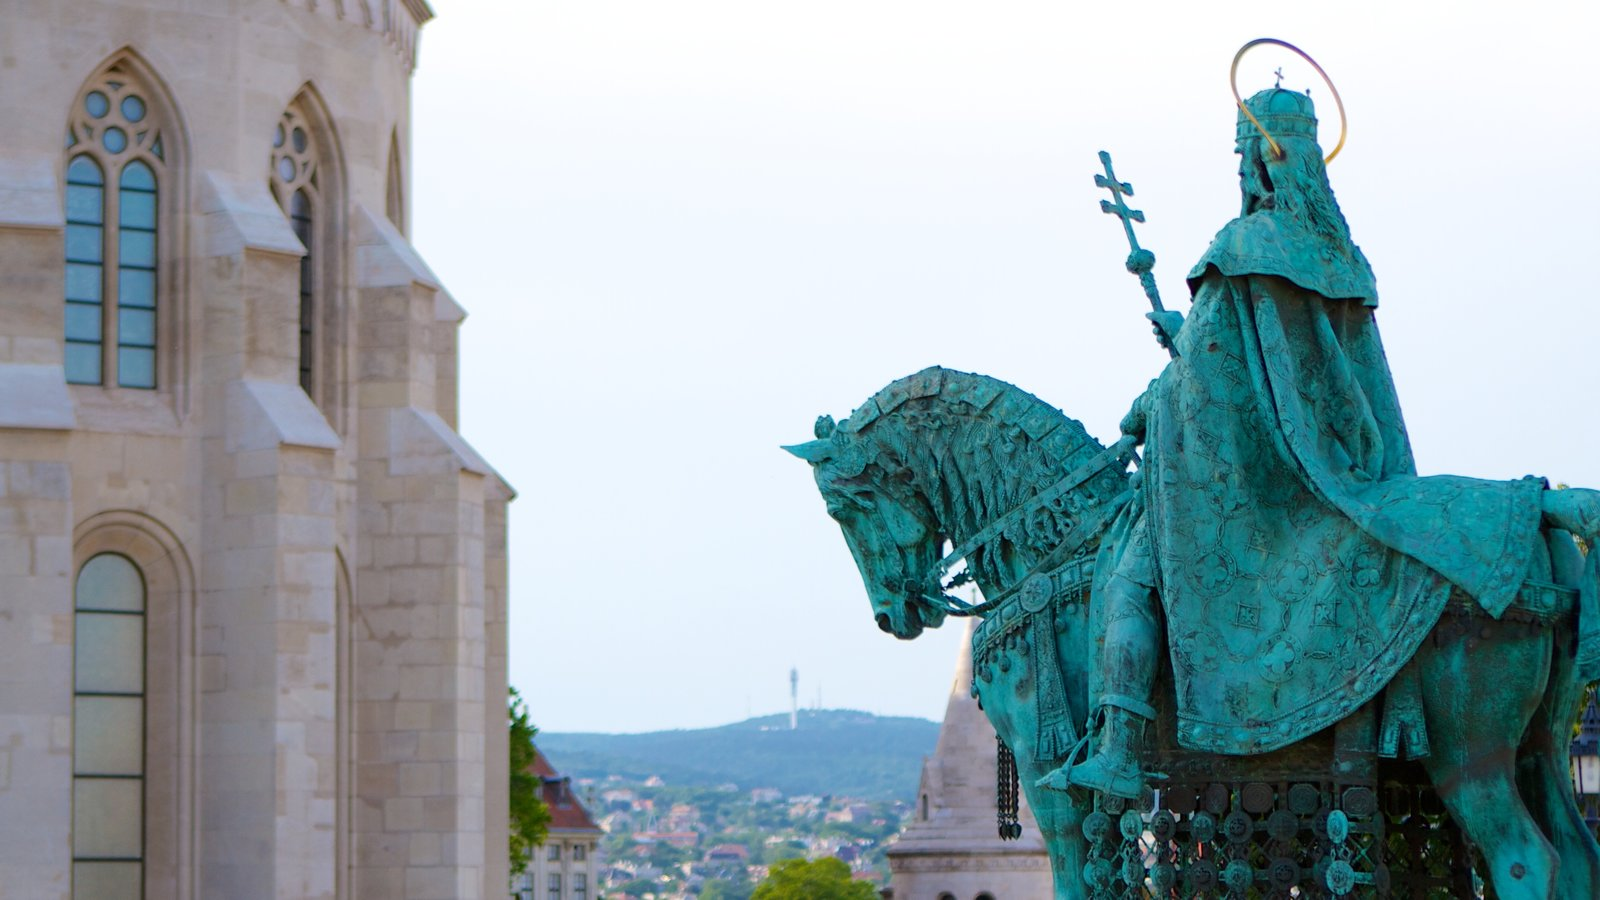 Buda Castle which includes heritage architecture and a statue or sculpture